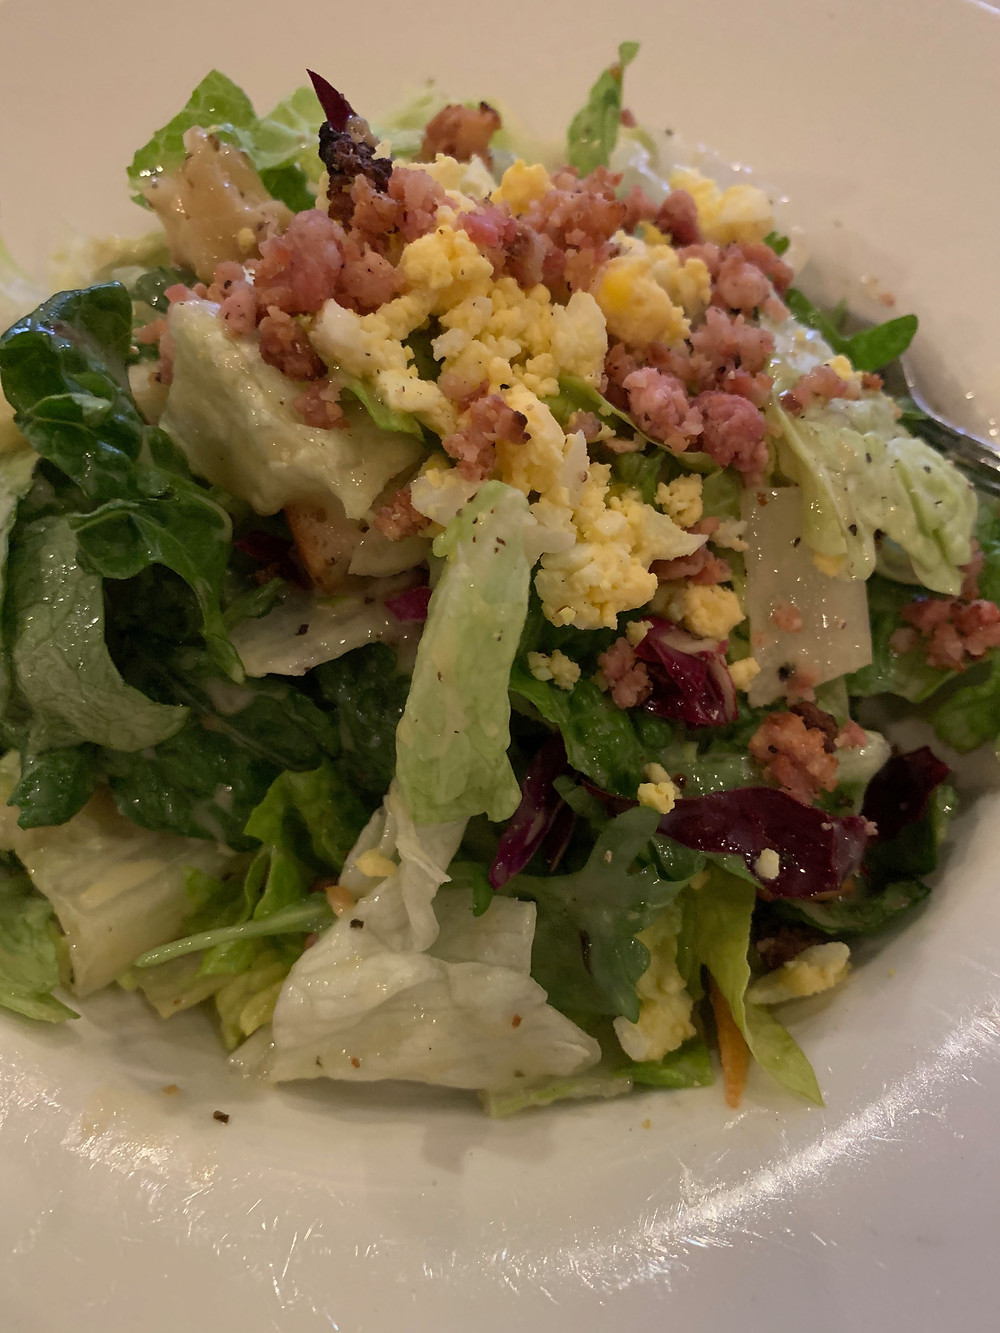 House salad from Smith Brothers Steakhouse in Toronto